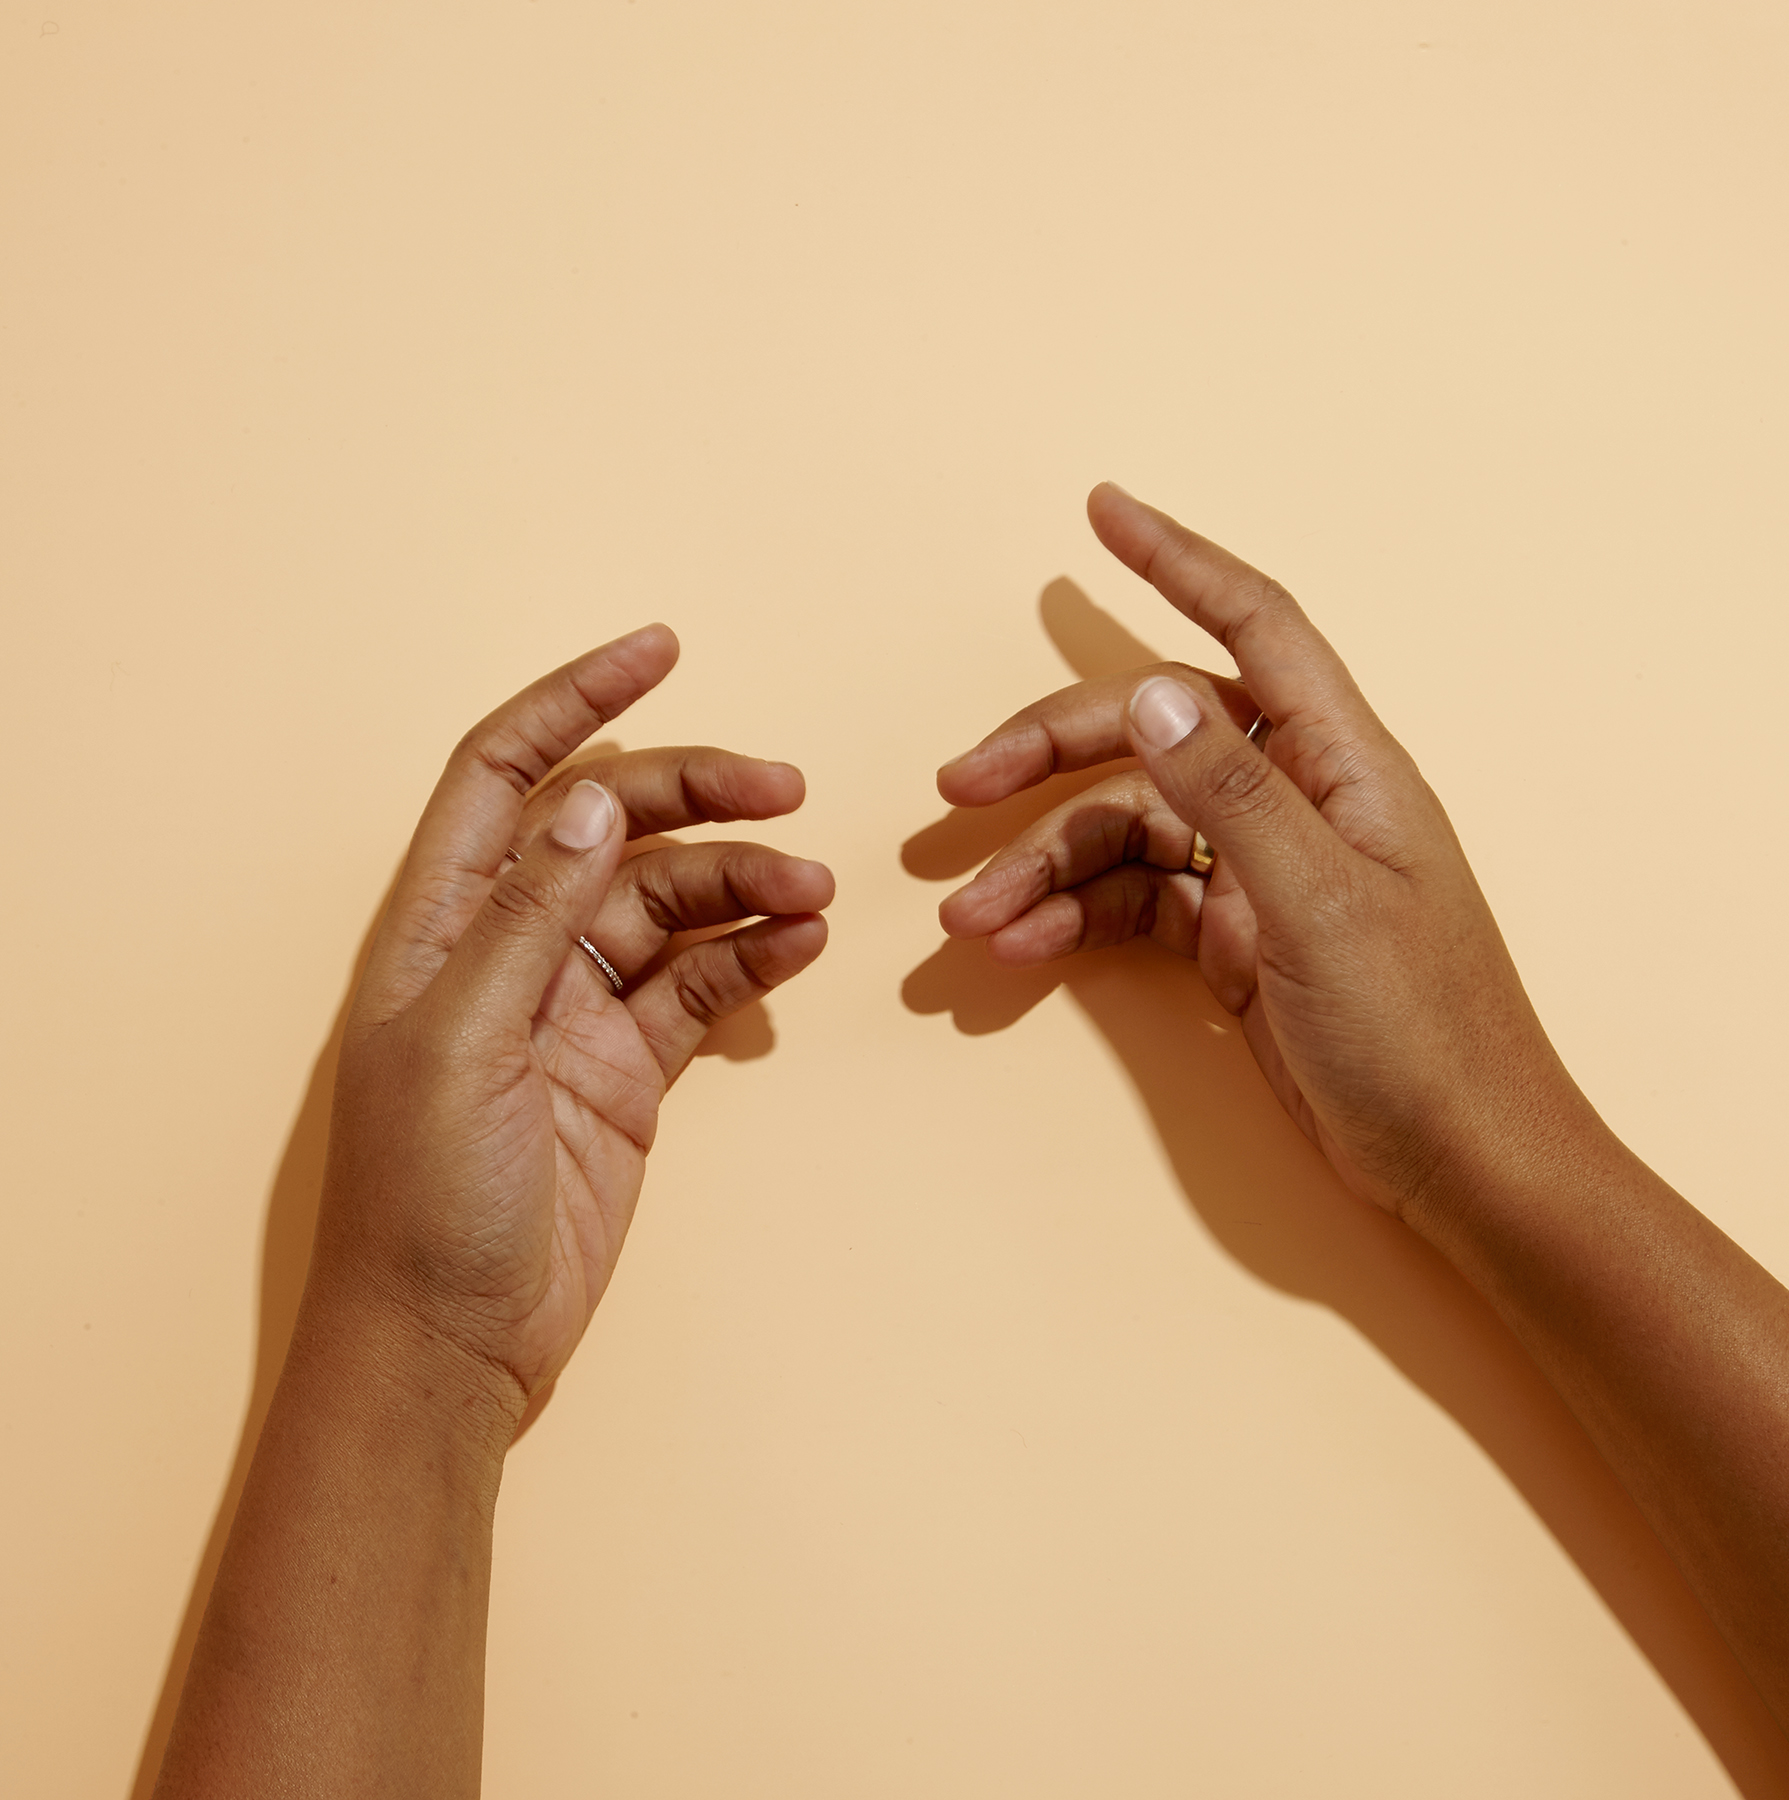 Two hands on peach background